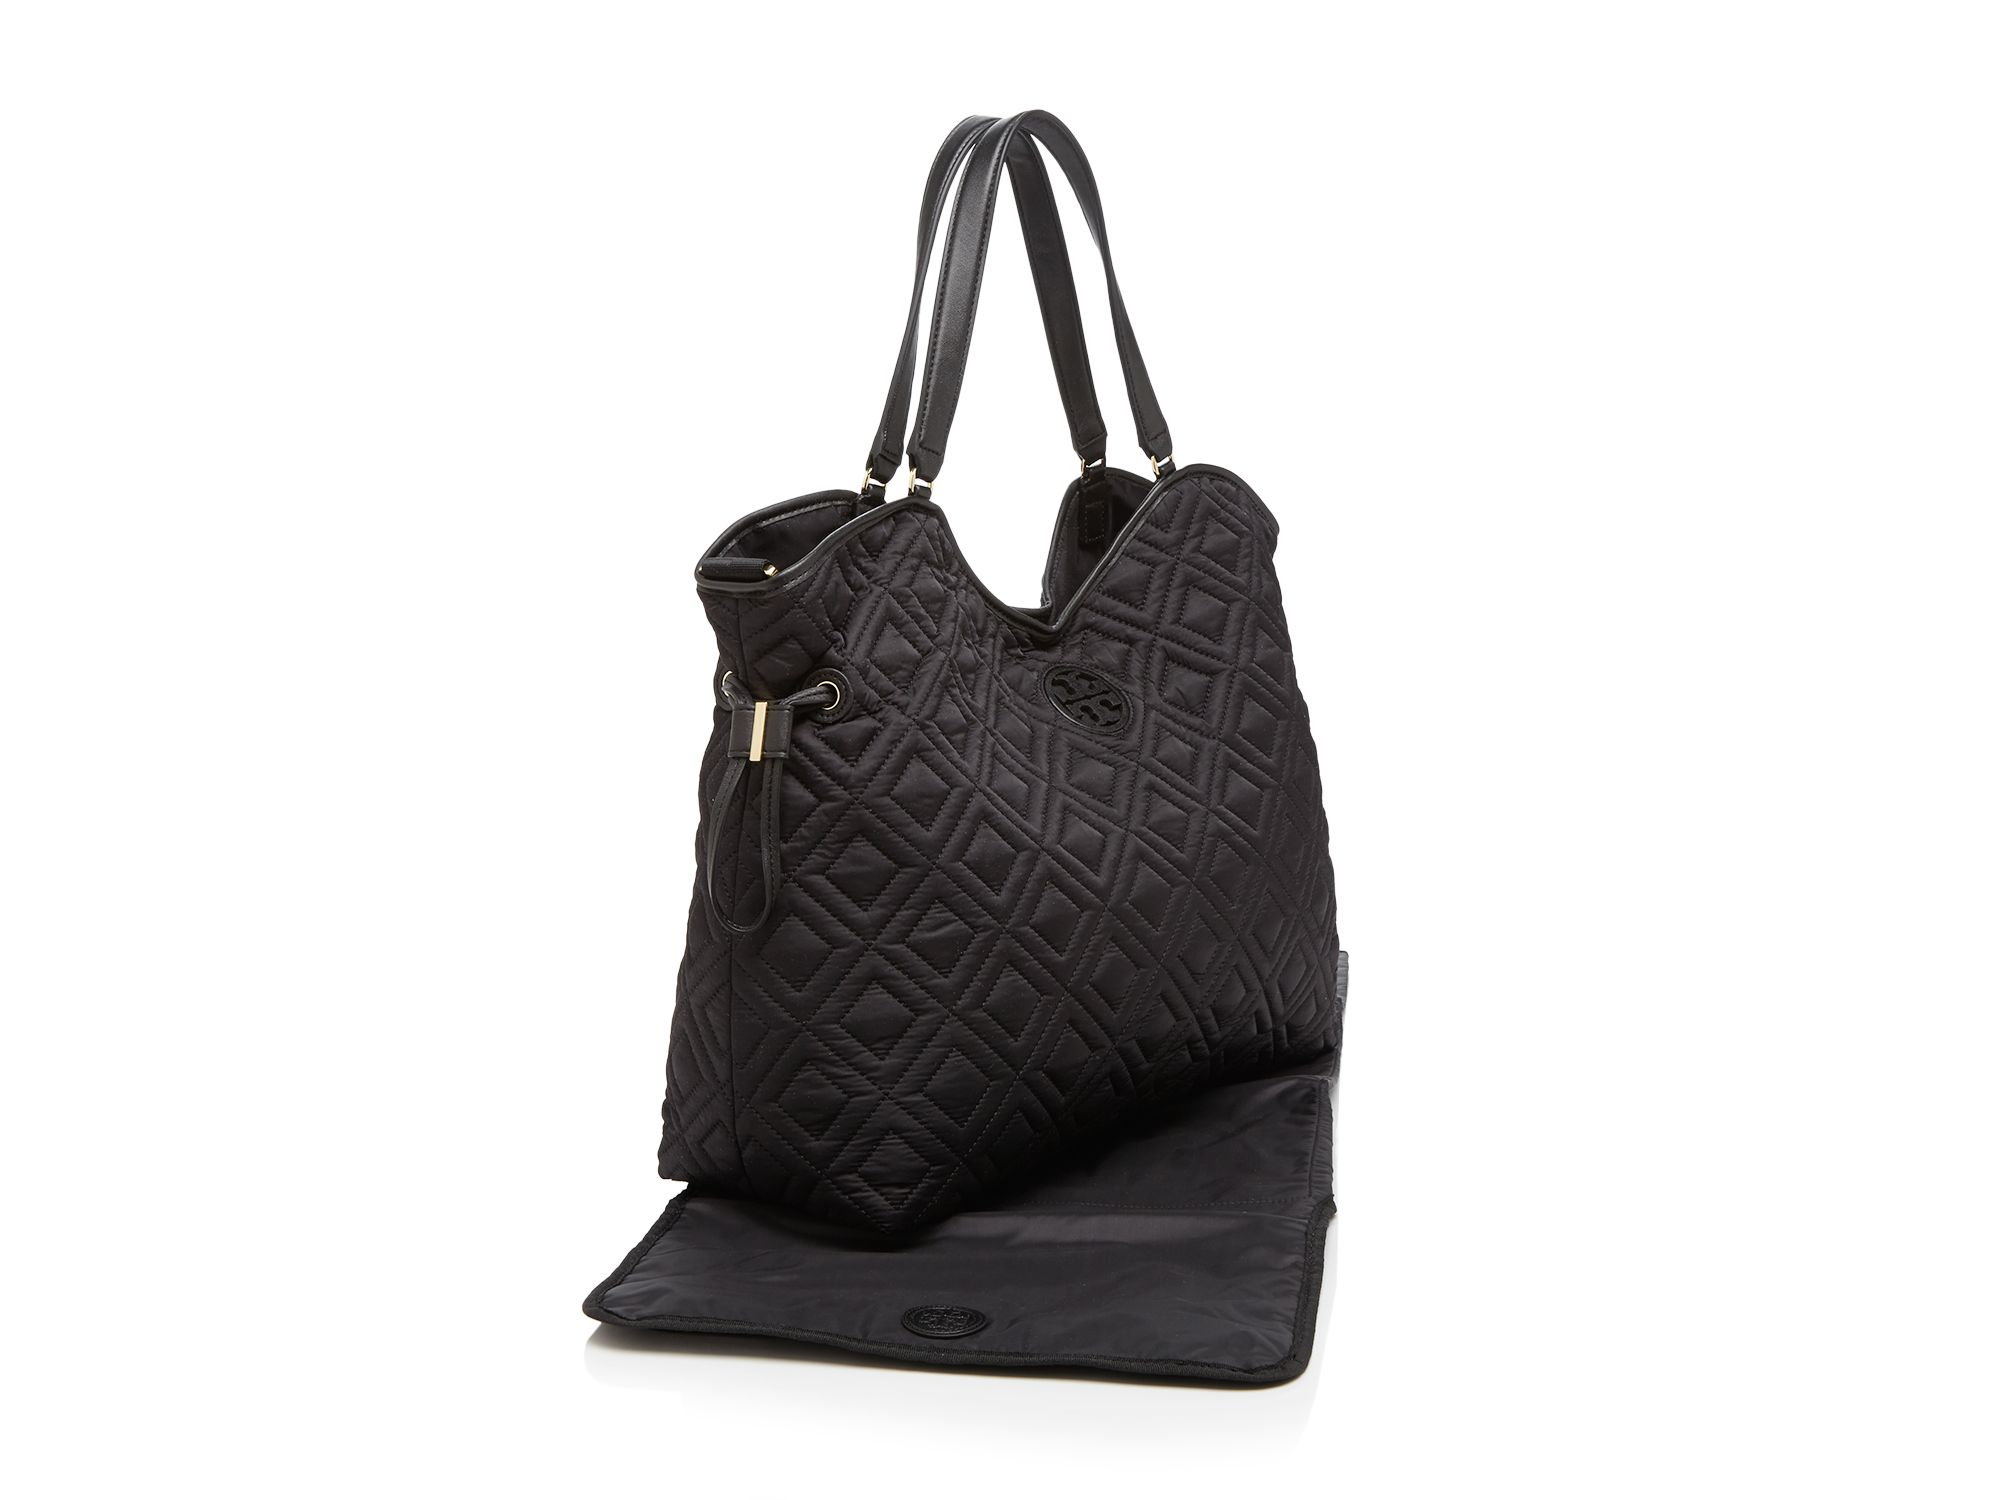 tory burch diaper bag quilted slouchy in black lyst. Black Bedroom Furniture Sets. Home Design Ideas